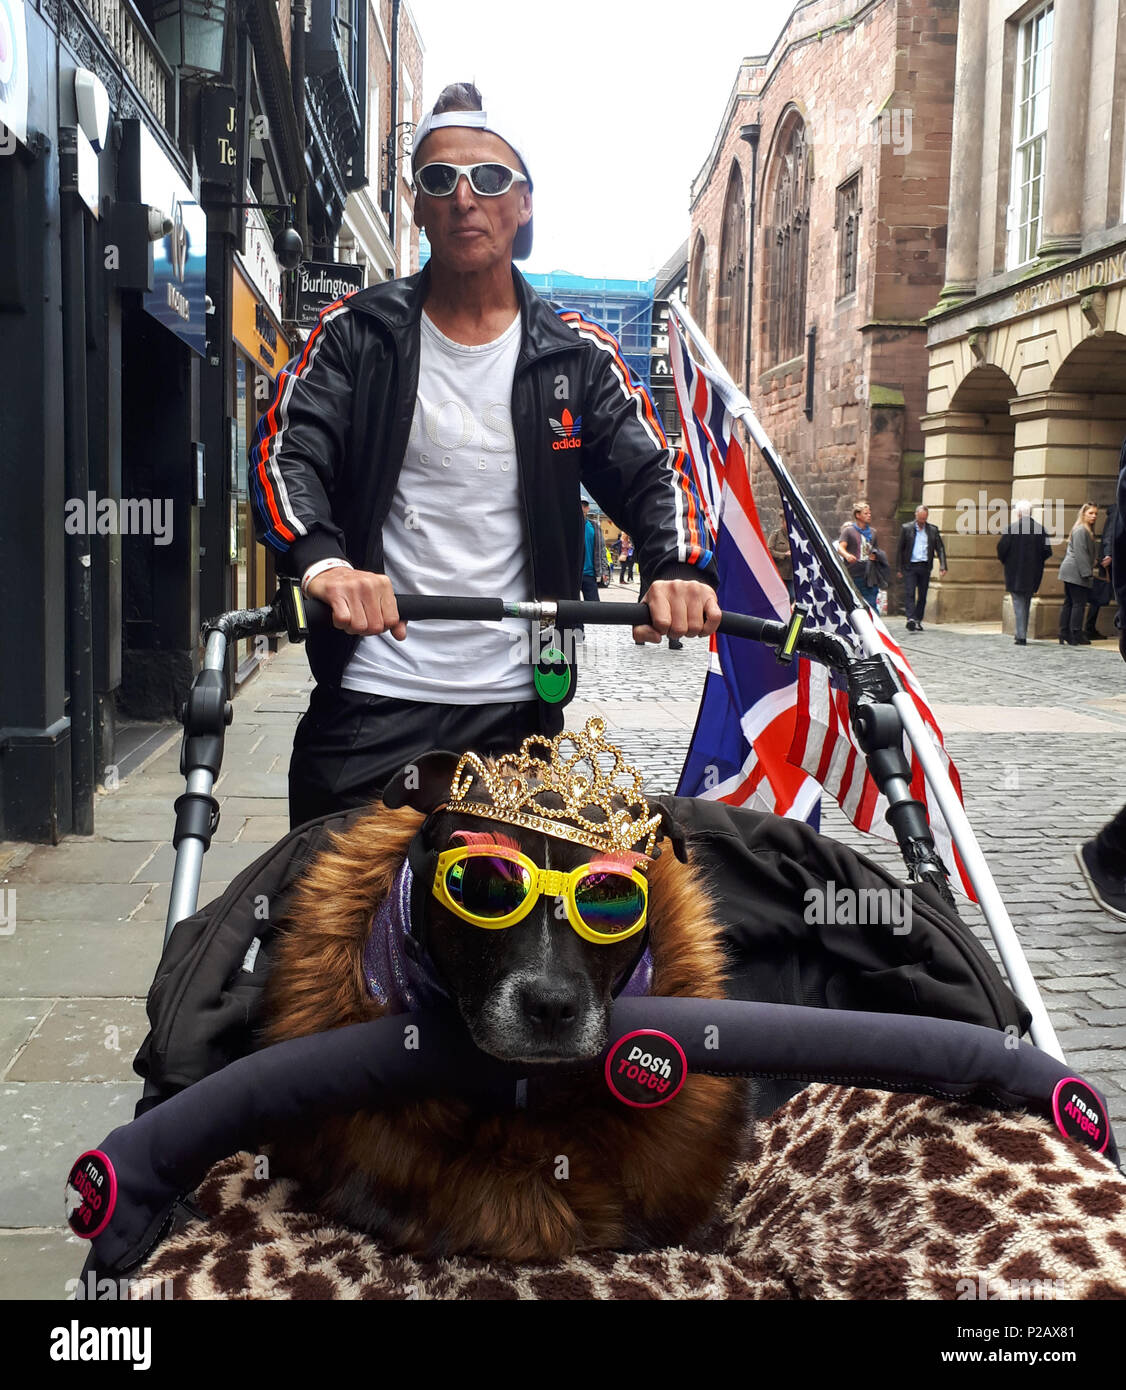 A man takes his dog, adorned with Tiara and sunglasses to see HM Queen Elizabeth II and Meghan Markle, Duchess of Sussex, visit Chester on their first public engagement together. Chester, Cheshire, on June 14, 2018. Credit: Paul Marriott/Alamy Live News Stock Photo